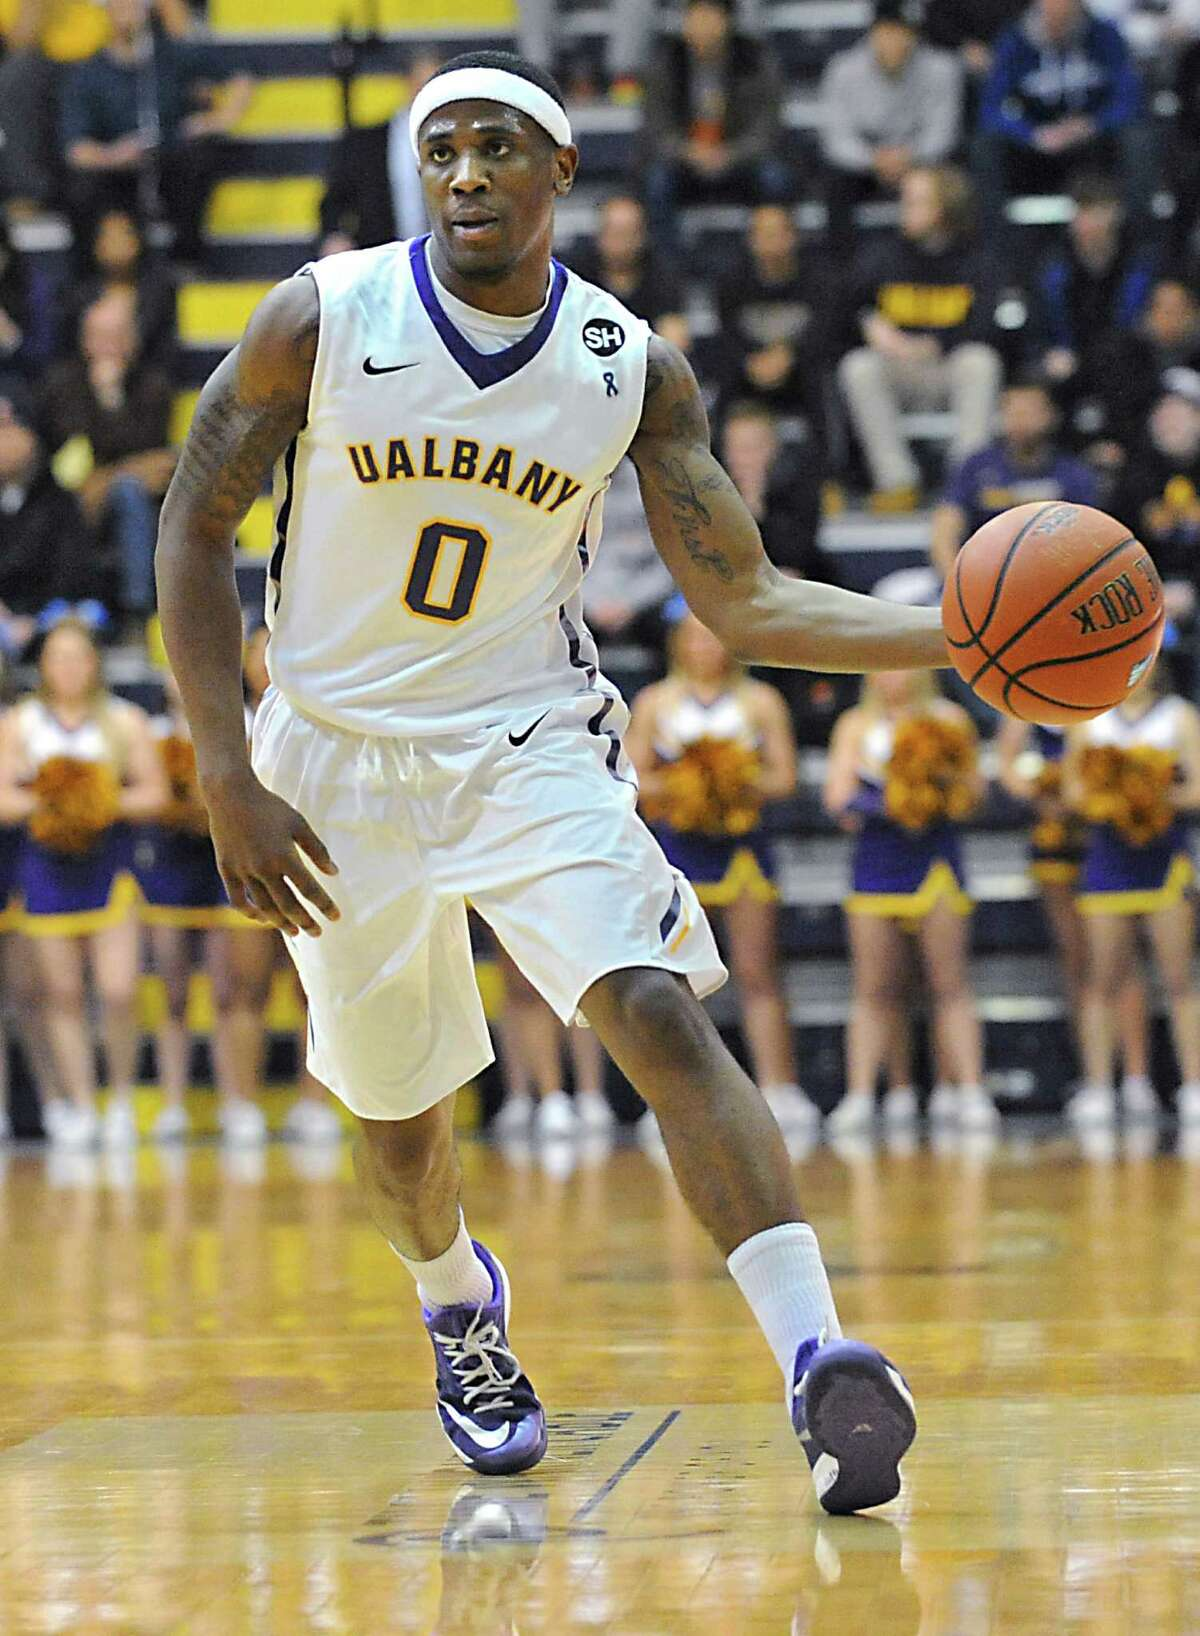 UAlbany's Evan Singletary brings the ball up the court during a basketball game against Stony Brook at the SEFCU arena on Tuesday, Feb. 17, 2015 in Albany, N.Y. (Lori Van Buren / Times Union)